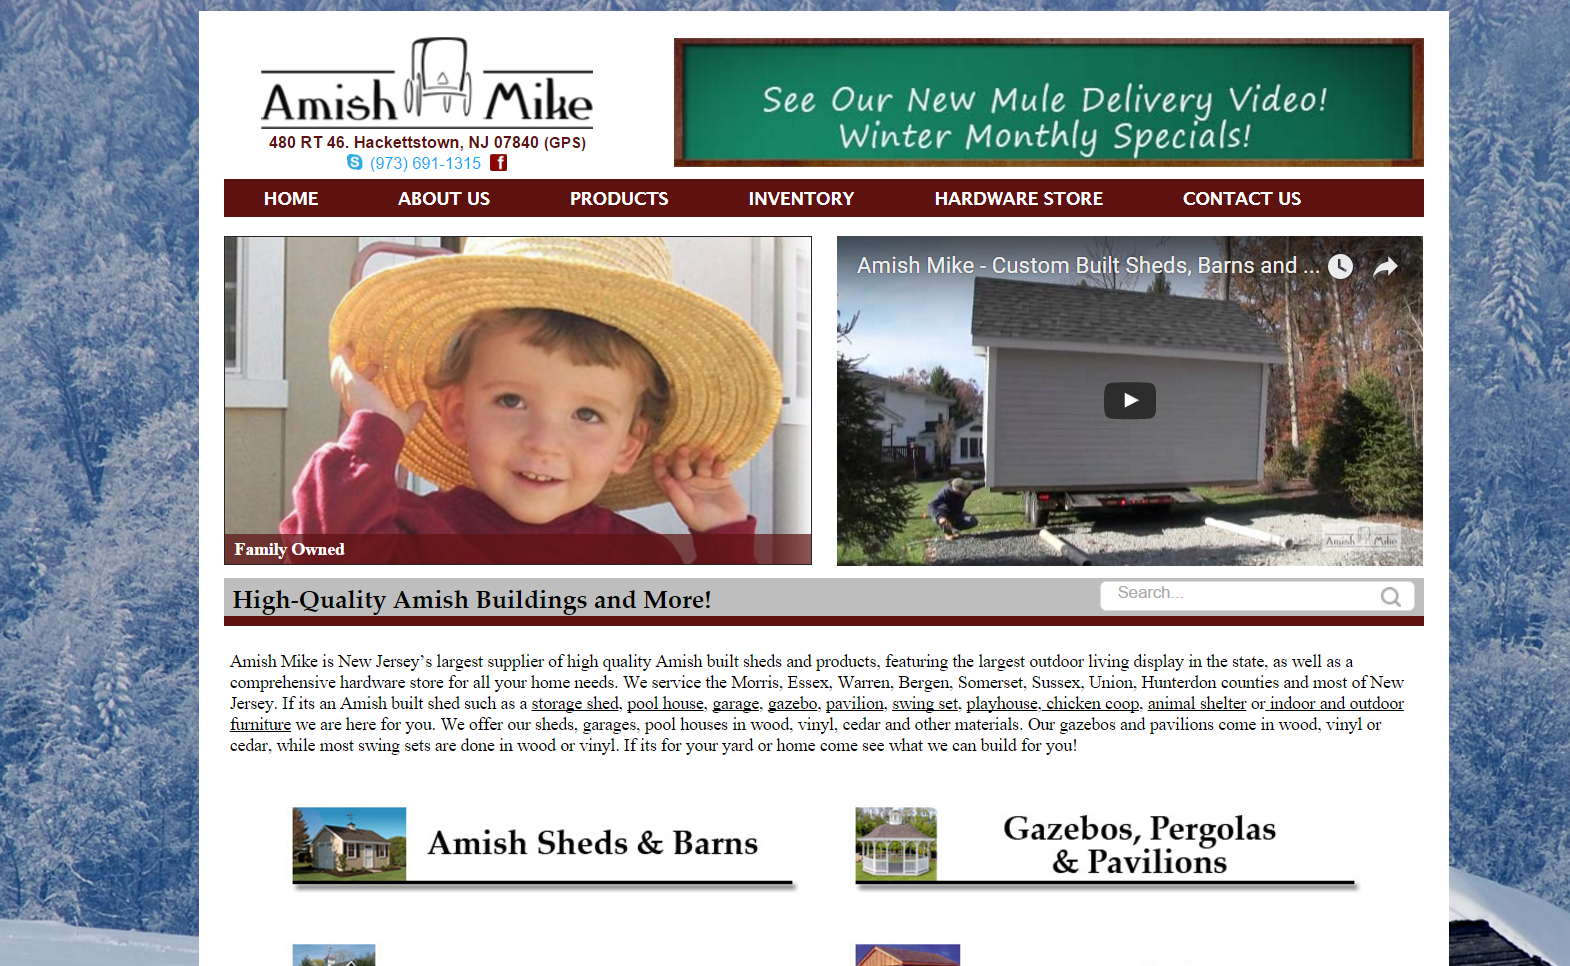 Amish Mike Website Redesign